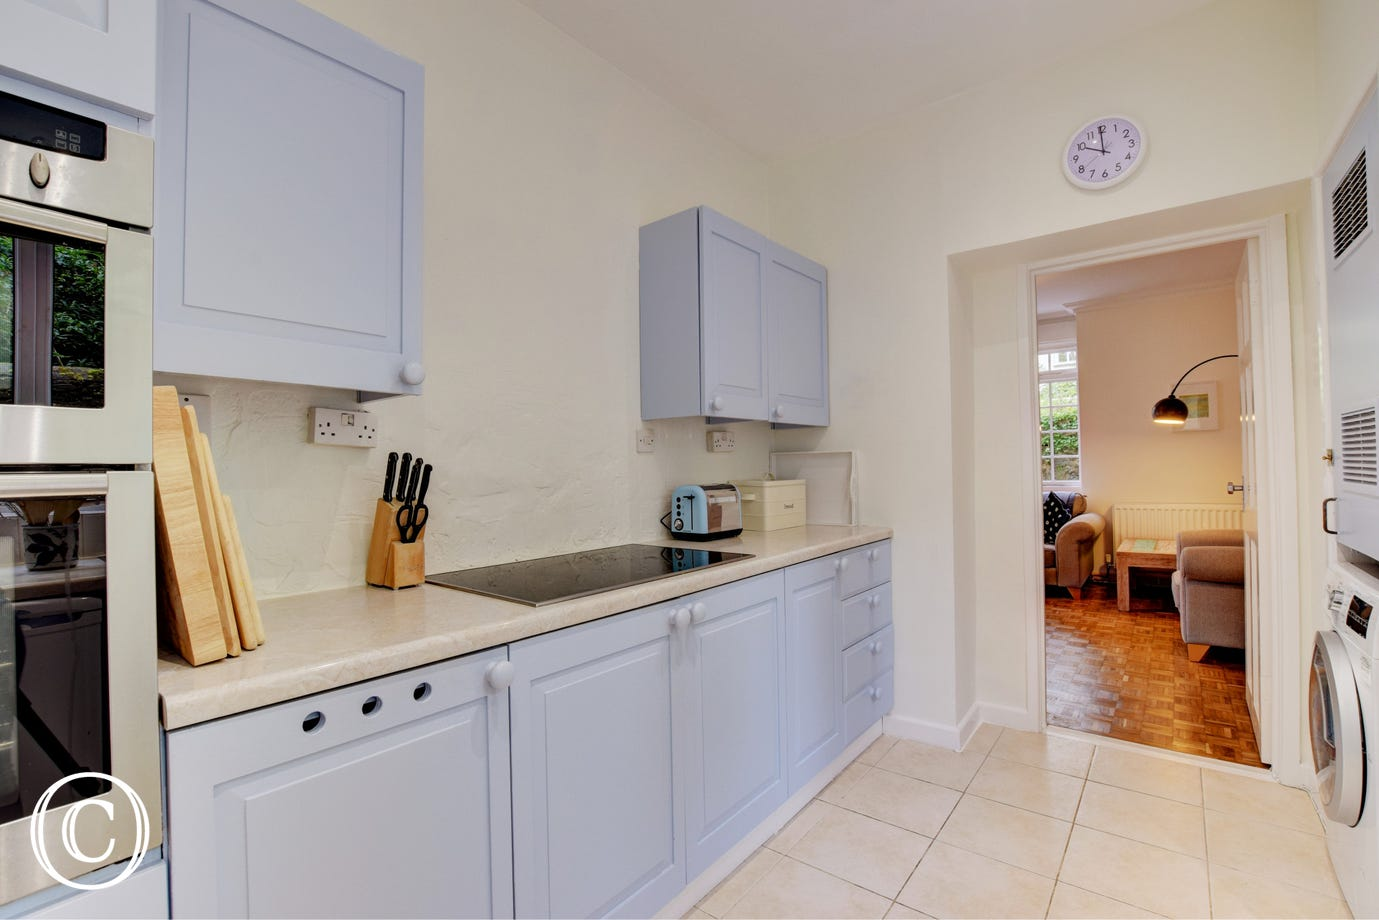 Wild Rose Cottage, Asprington - Kitchen - View 2